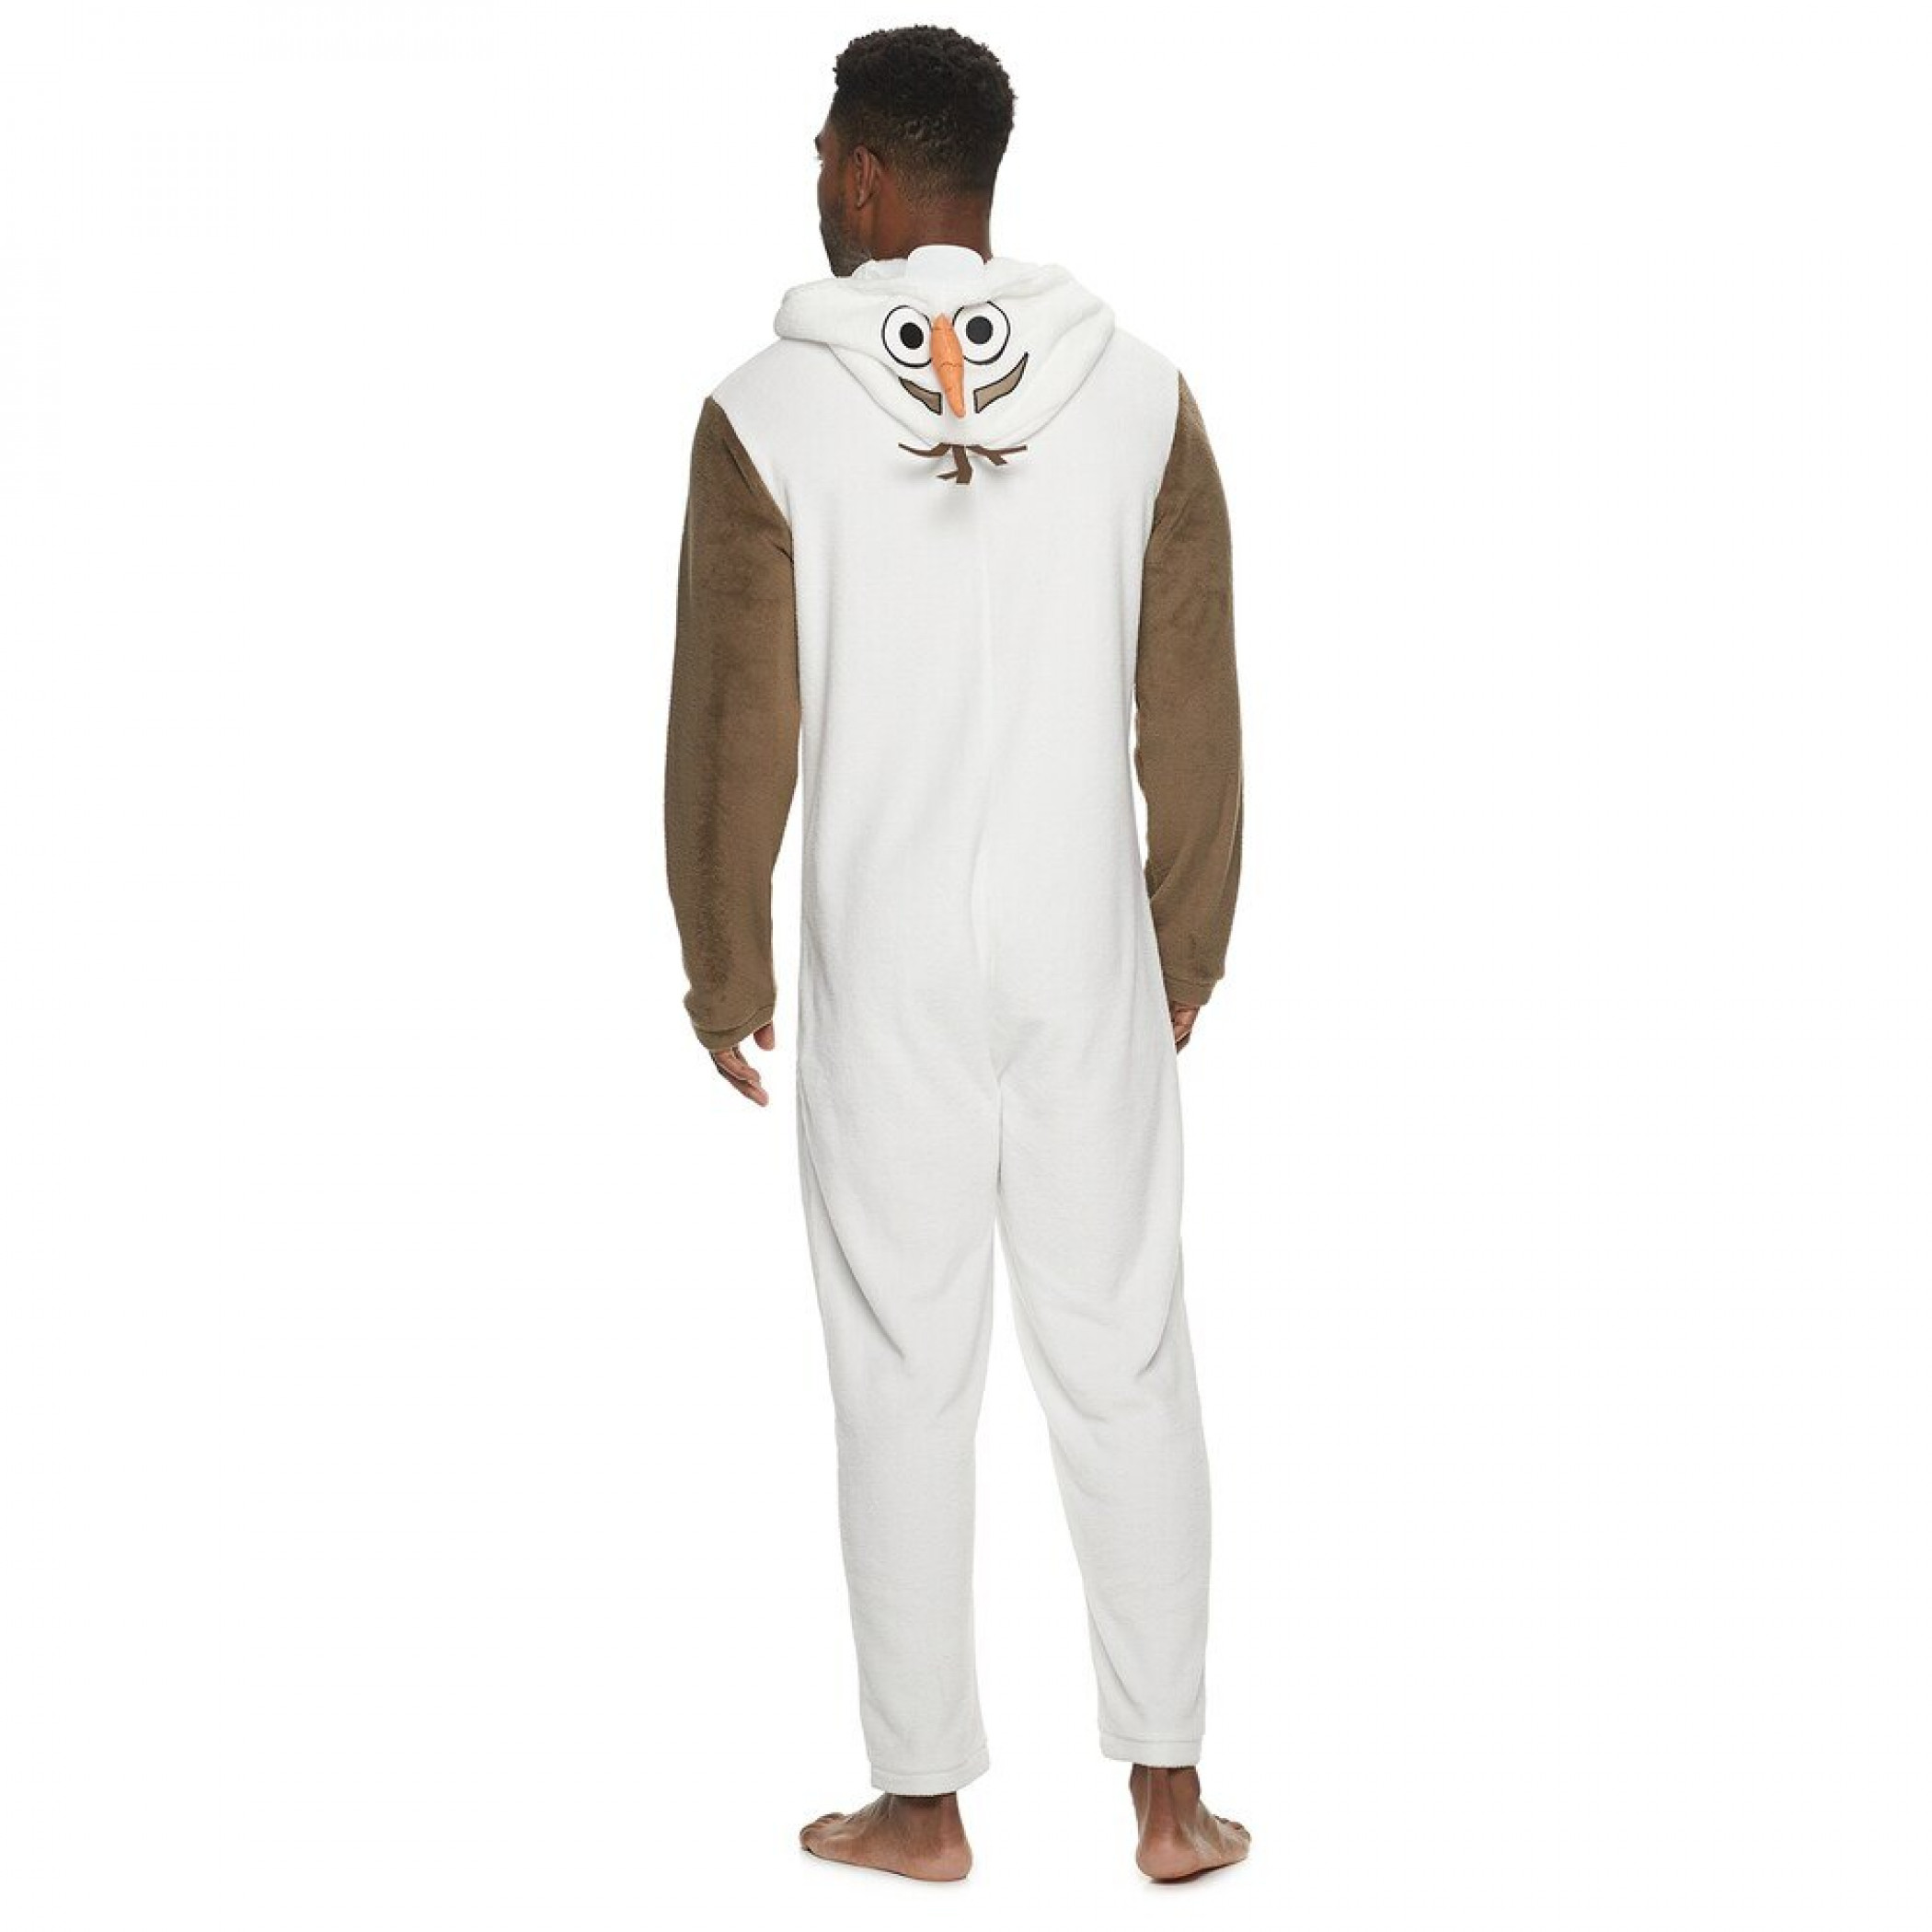 Frozen's Olaf Costume White Plush Union Suit